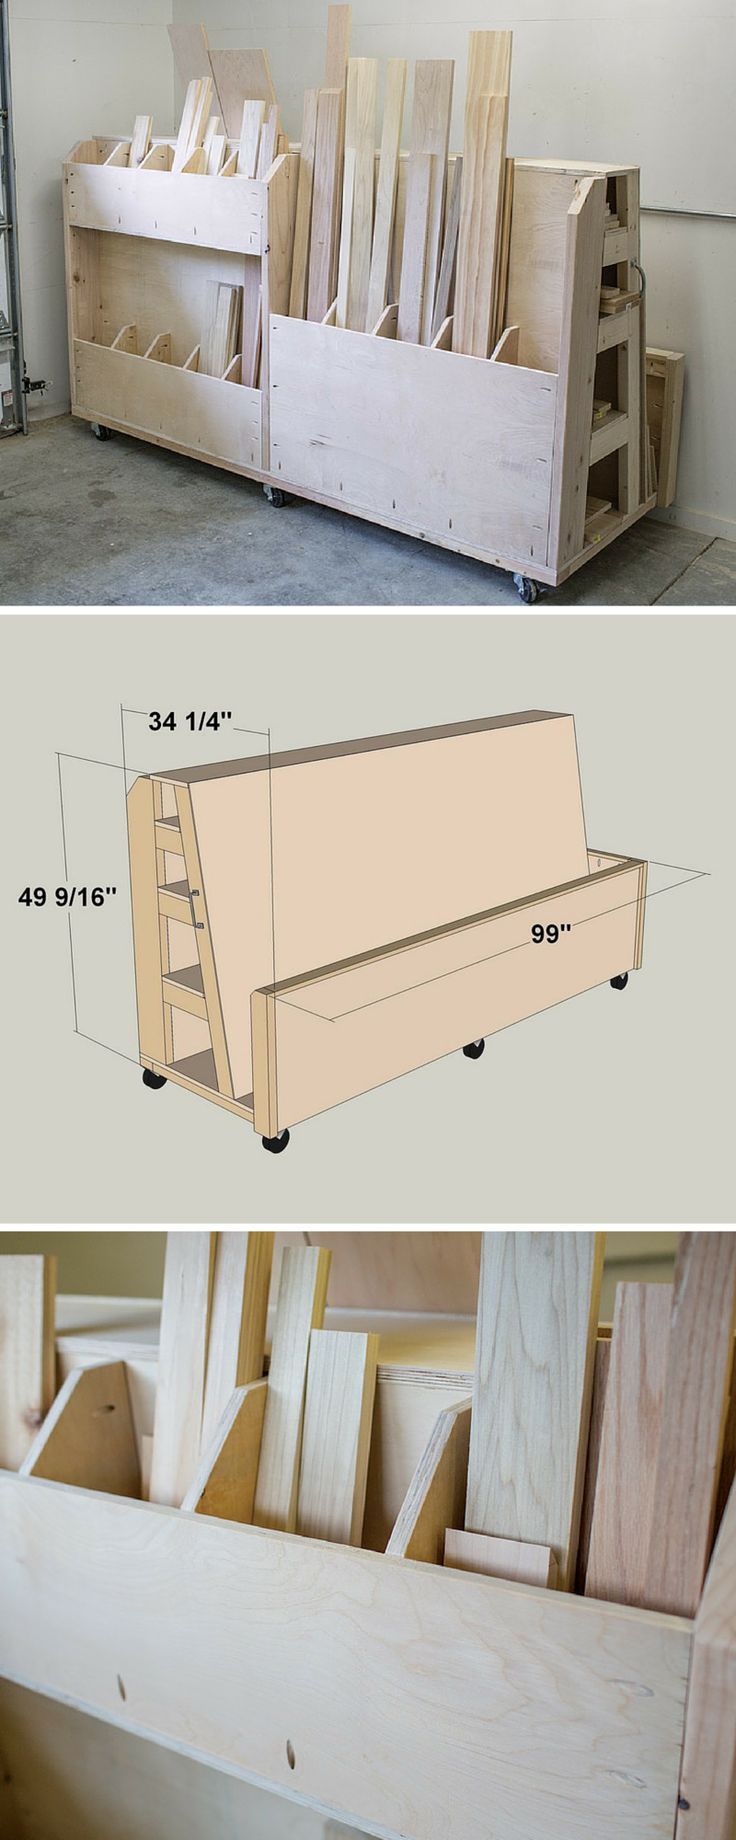 Finding a place to store lumber and sheet goods can be challenging. This lumber…